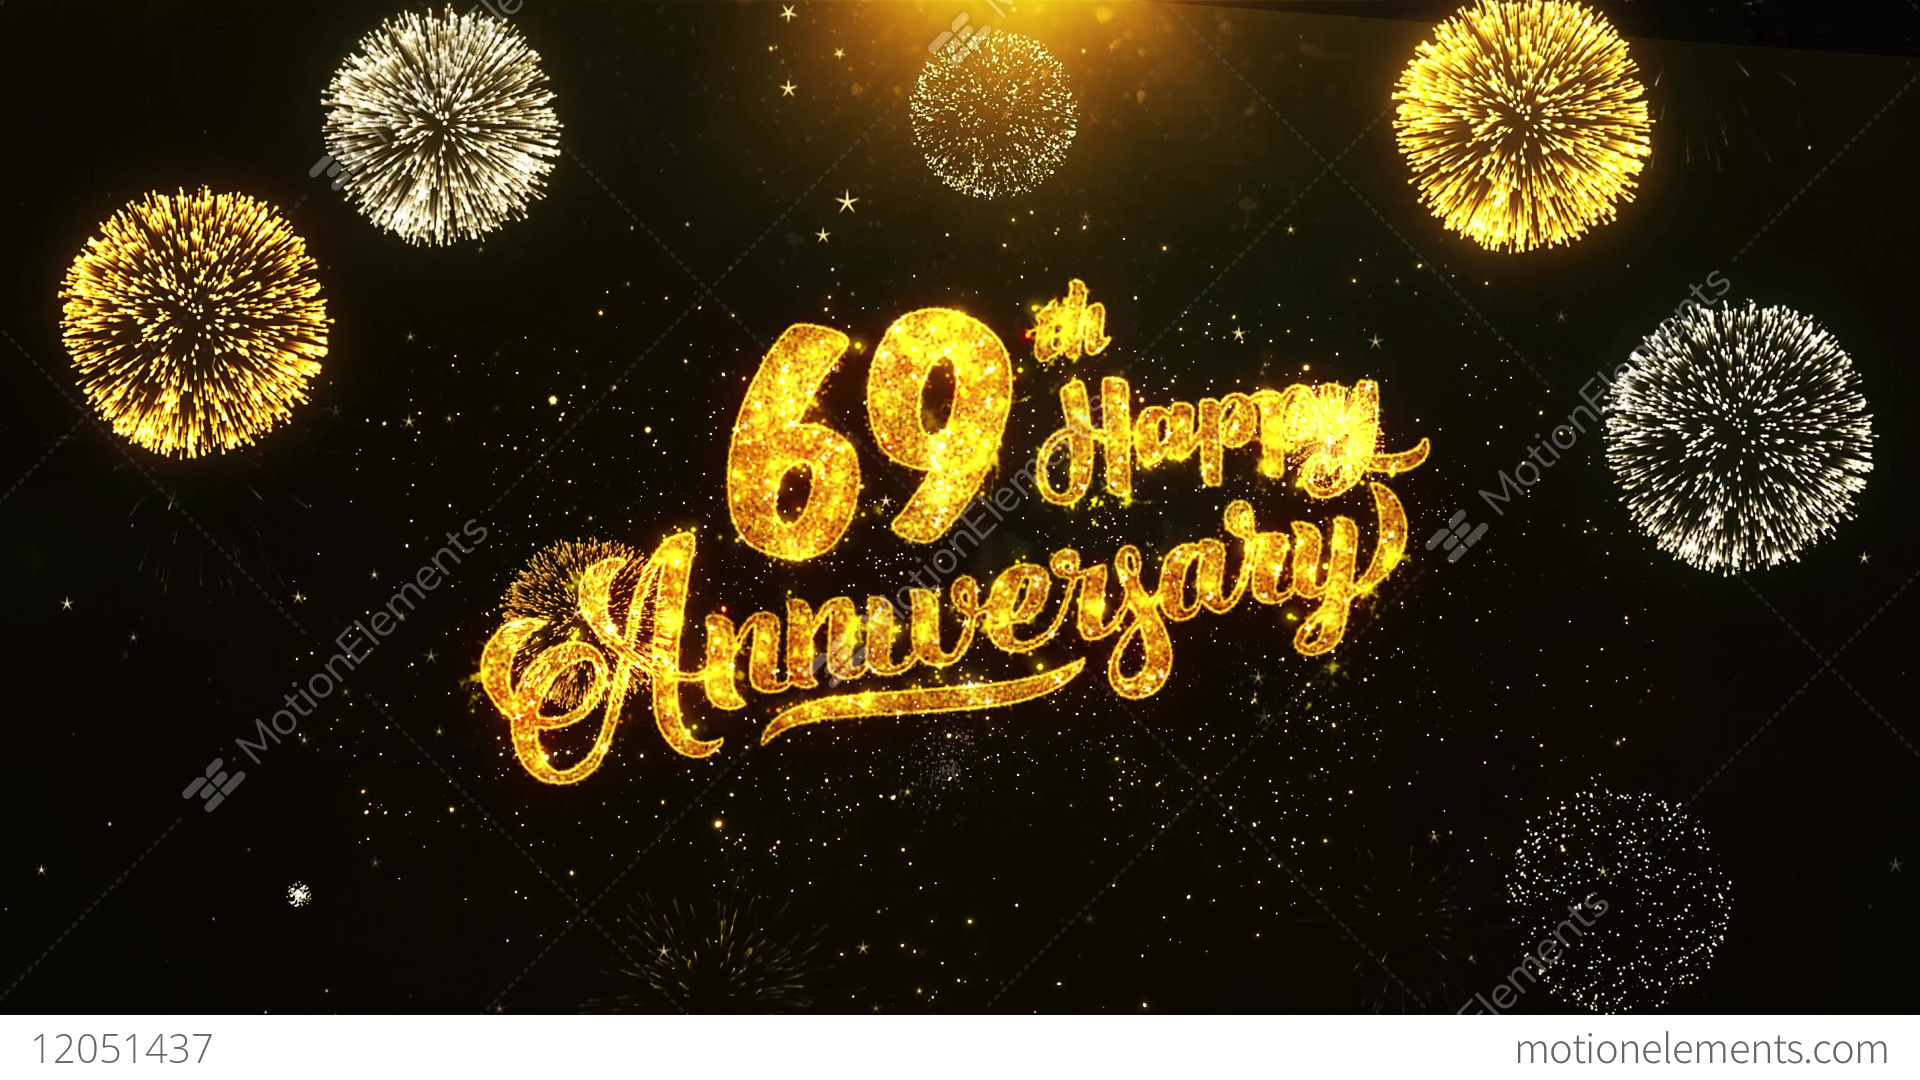 69th happy anniversary text greeting wishes celebration 69th happy anniversary text greeting wishes stock video footage stopboris Images